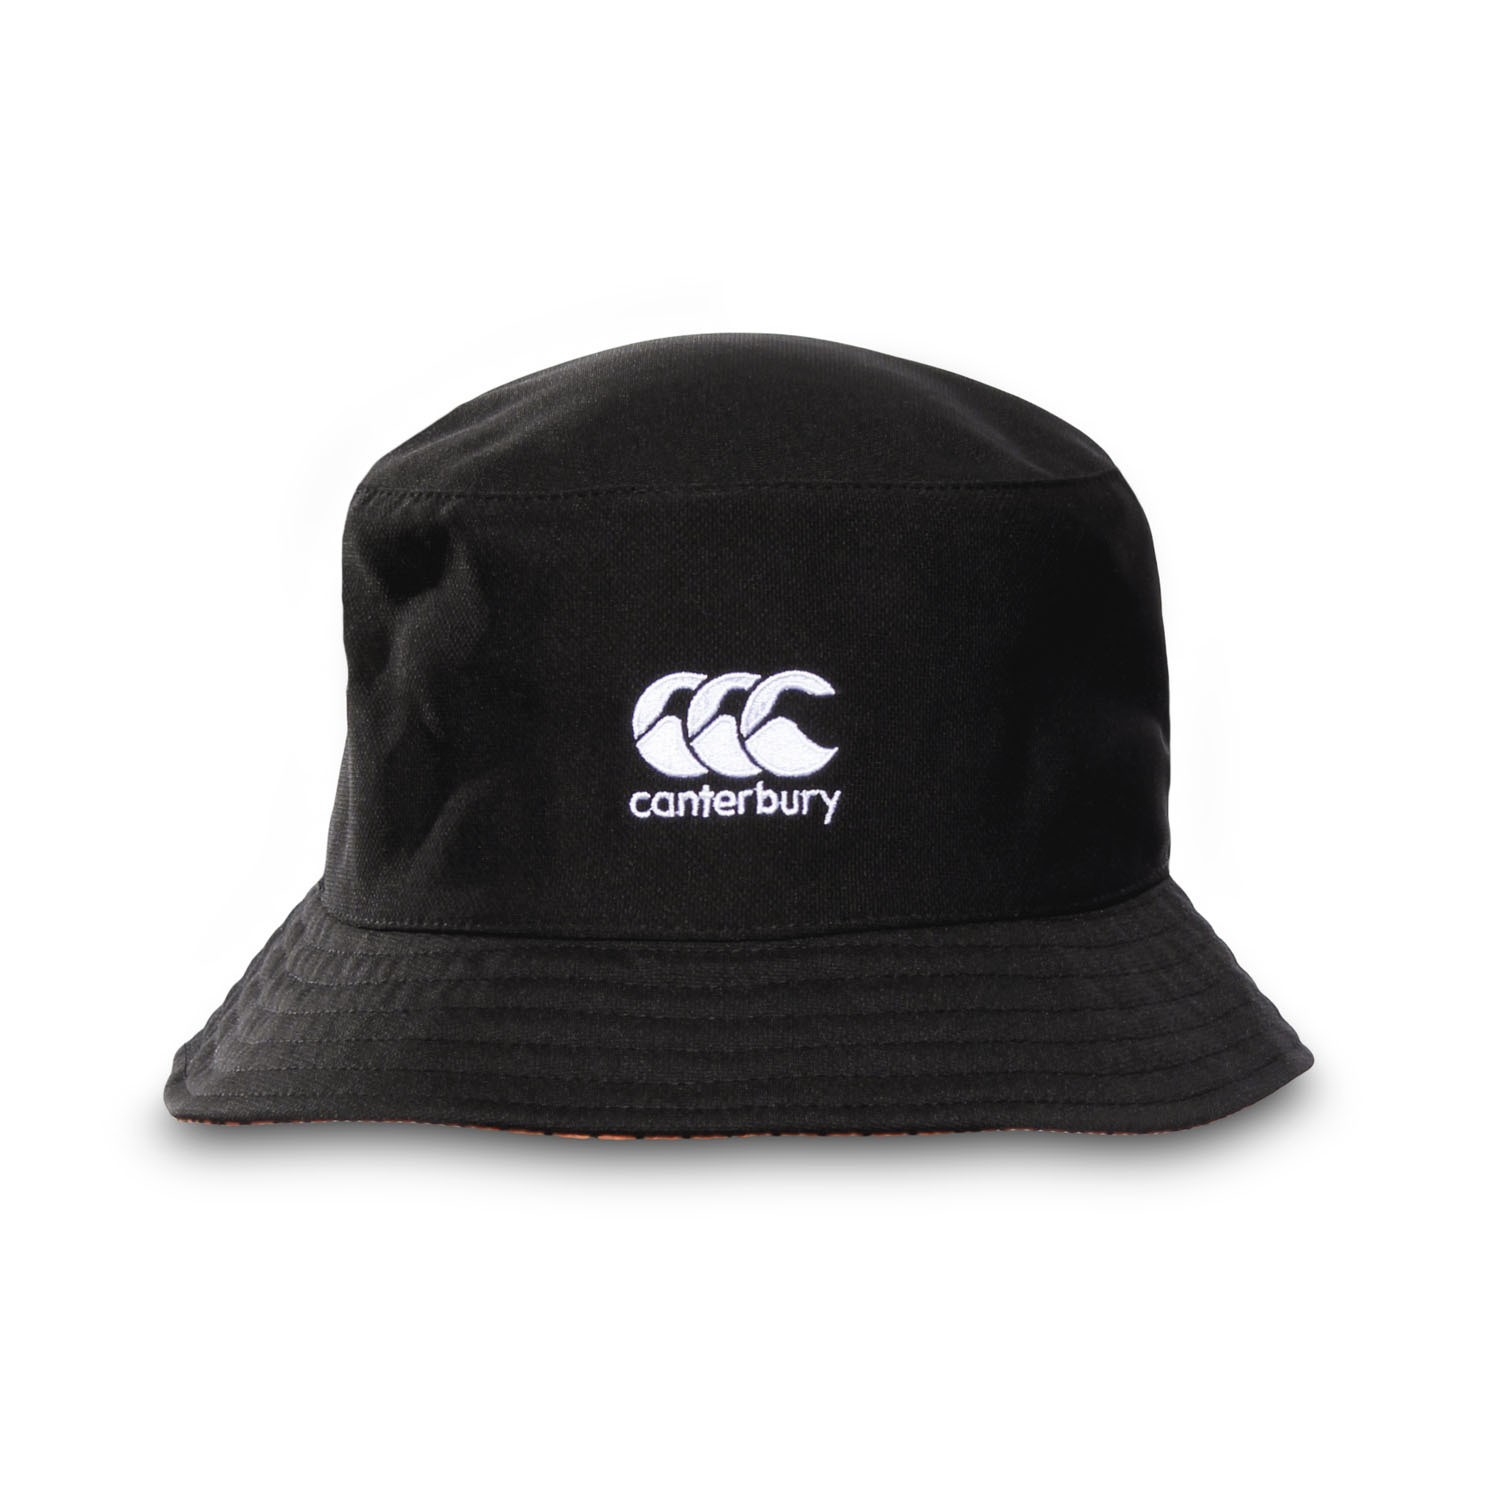 BLACKCAPS Supporters Bucket Hat (L/XL) image